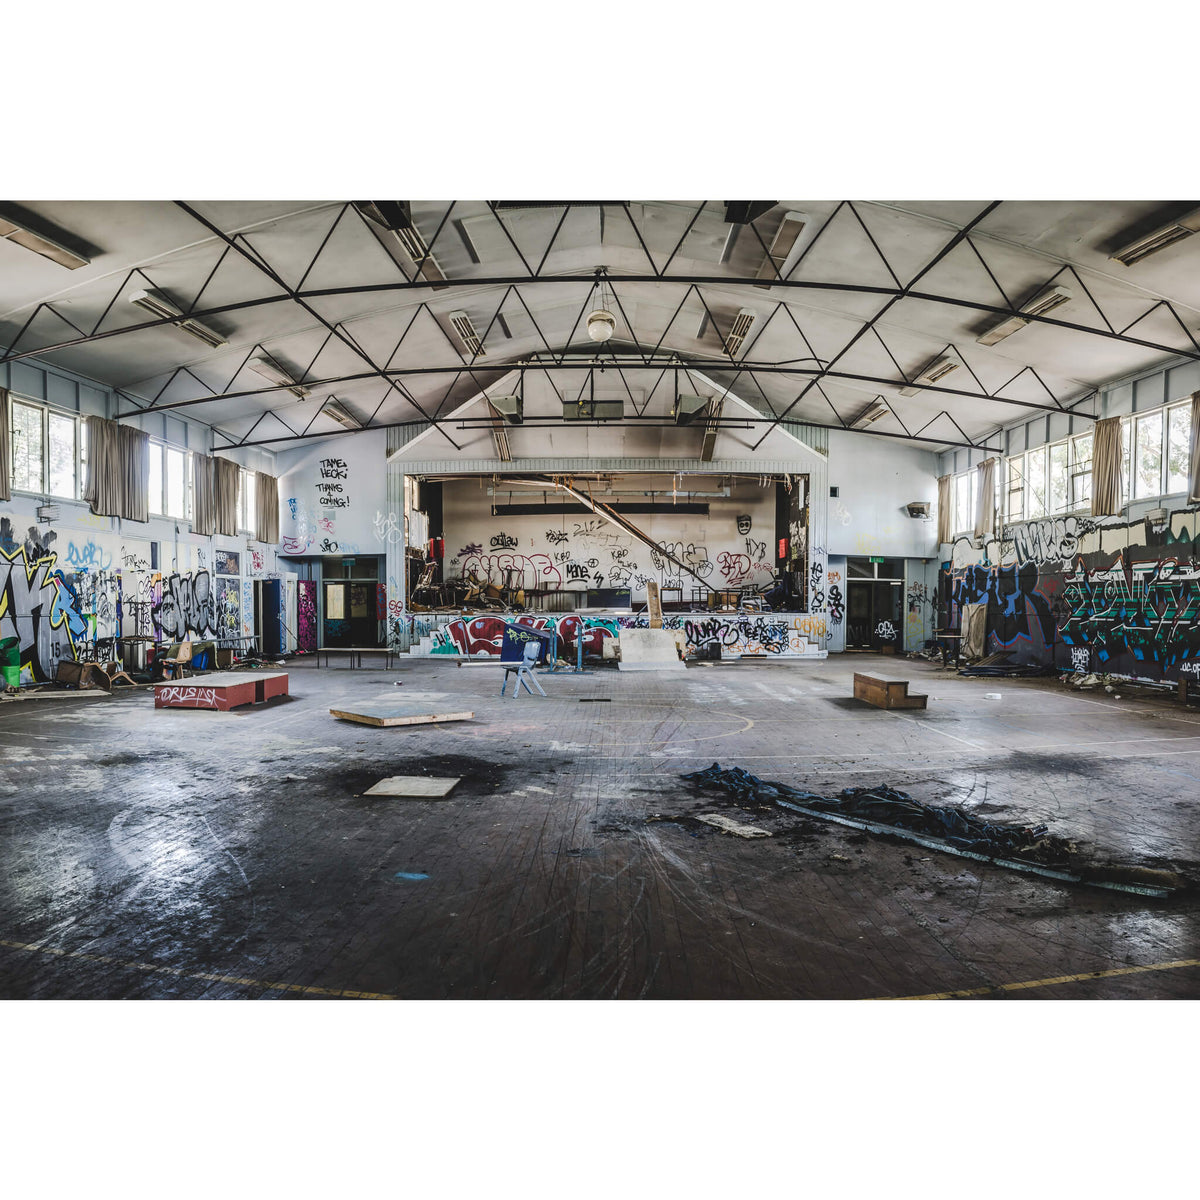 Assembly Hall | Macquarie Boys Technology High Fine Art Print - Lost Collective Shop